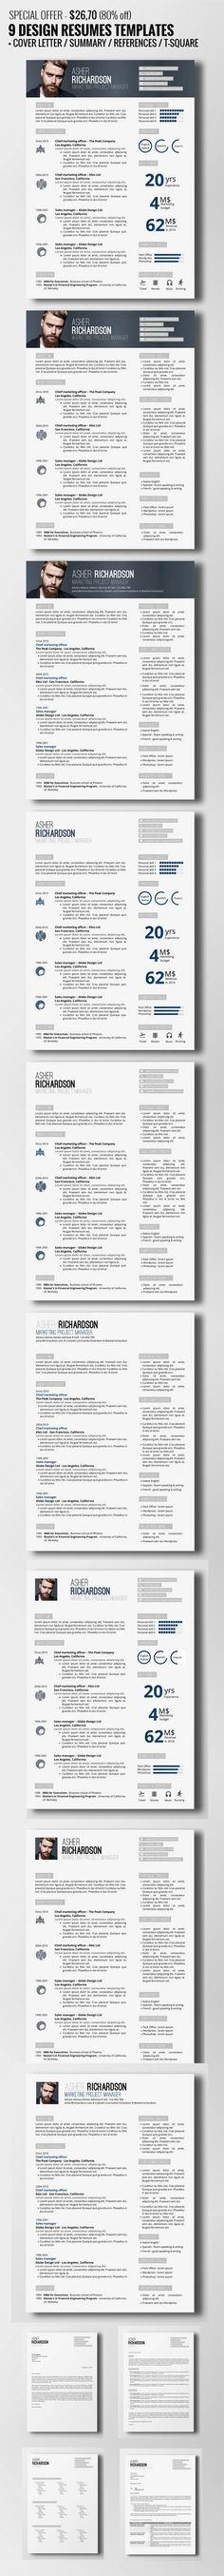 435 best Resume images on Pinterest Fonts, Model and Plants - how to email a resume